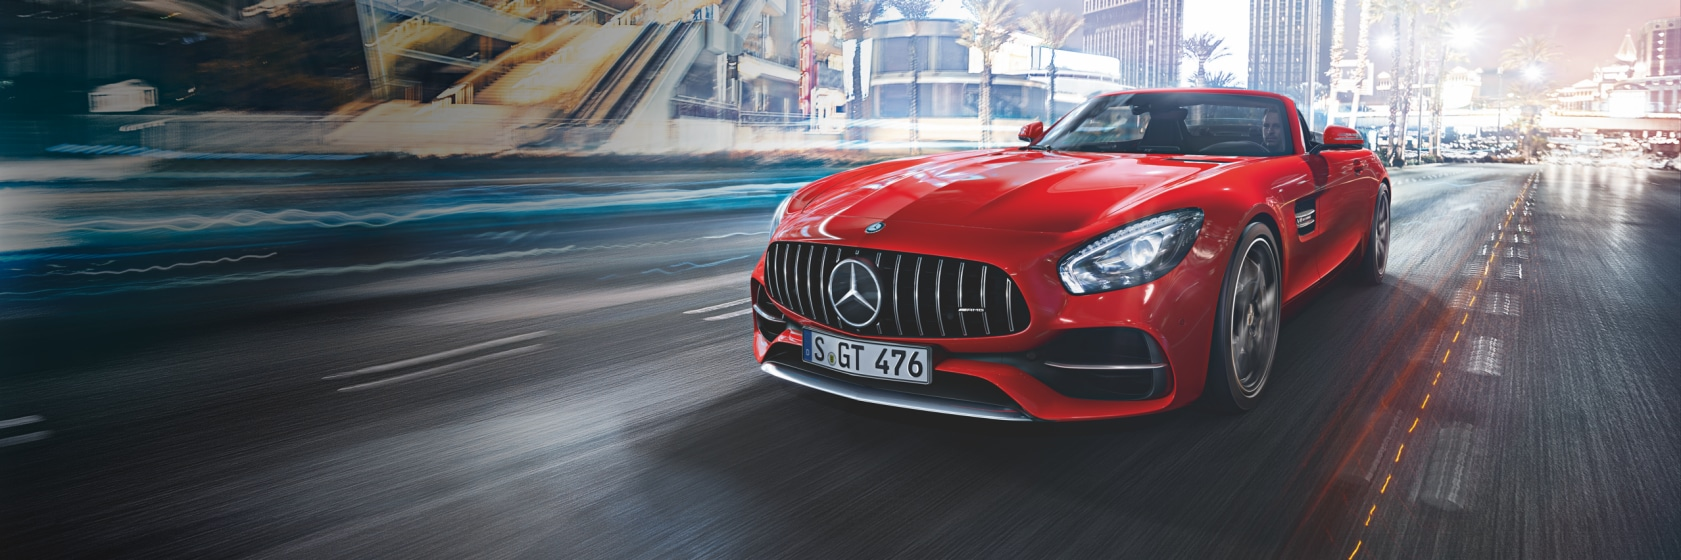 Red Mercedes GT